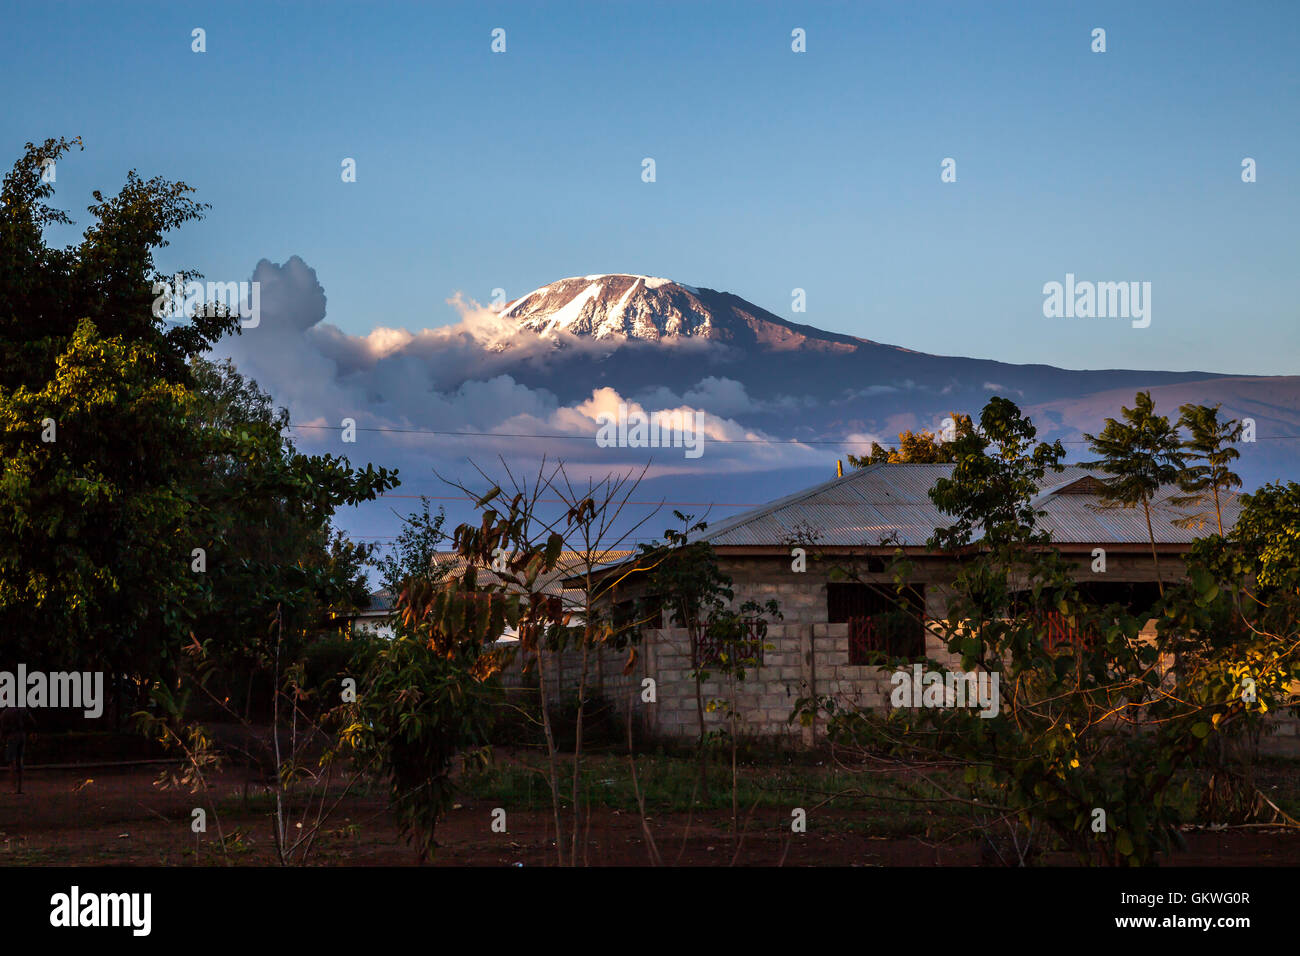 A view of mount kilimanjaro from the small town of Moshi, Tanzania - Stock Image